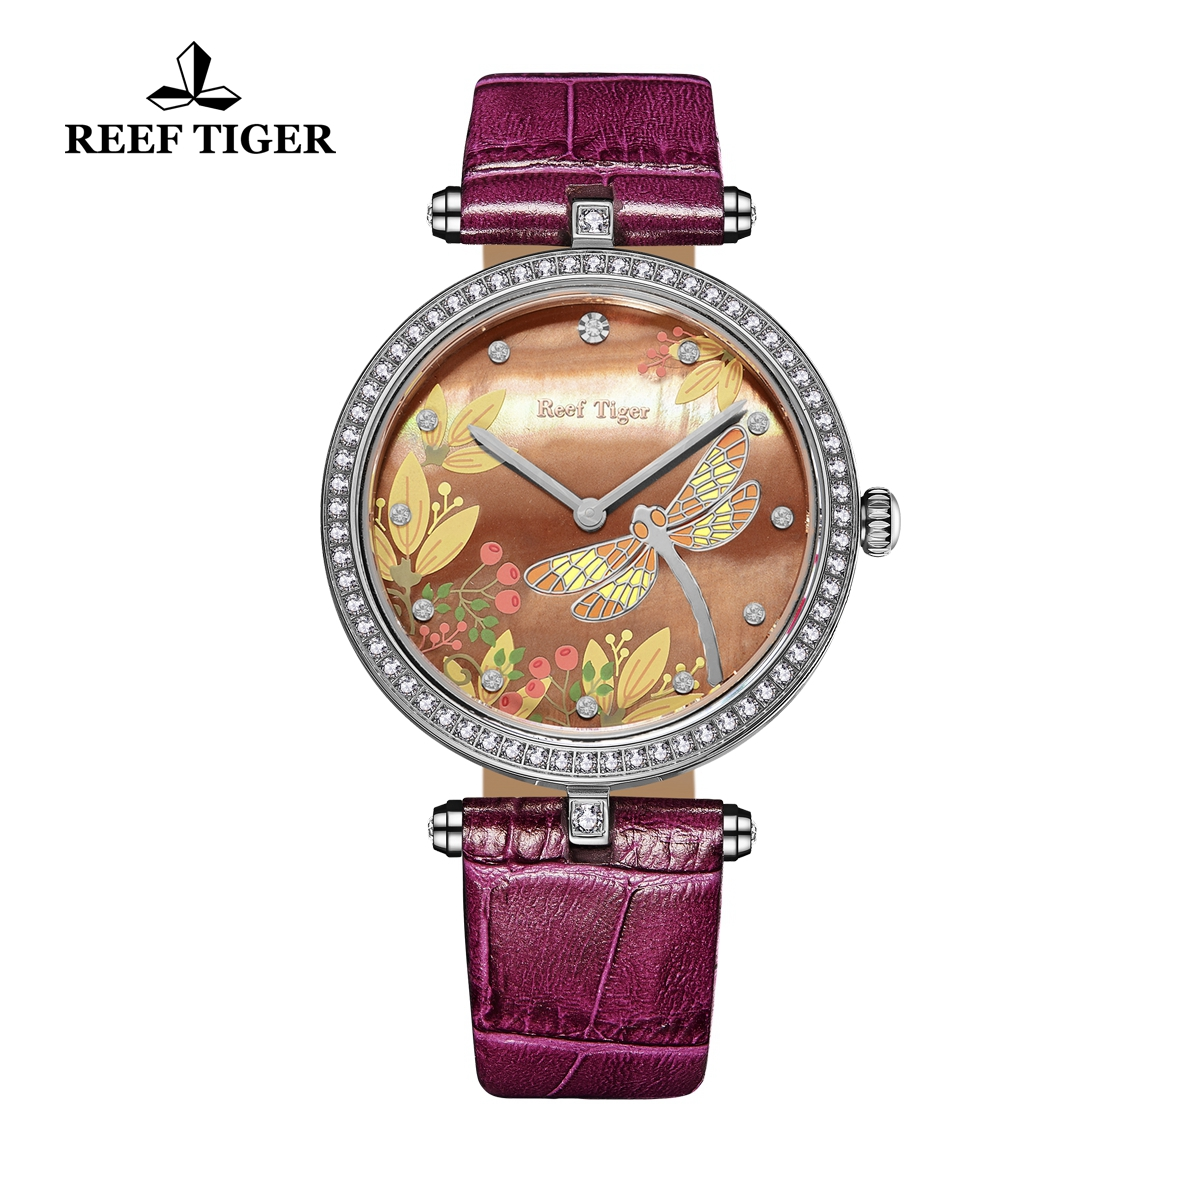 Reef Tiger Fashion Watch Brown MOP Dial Quartz Stainless Steel Lady Watch RGA151-YPPD